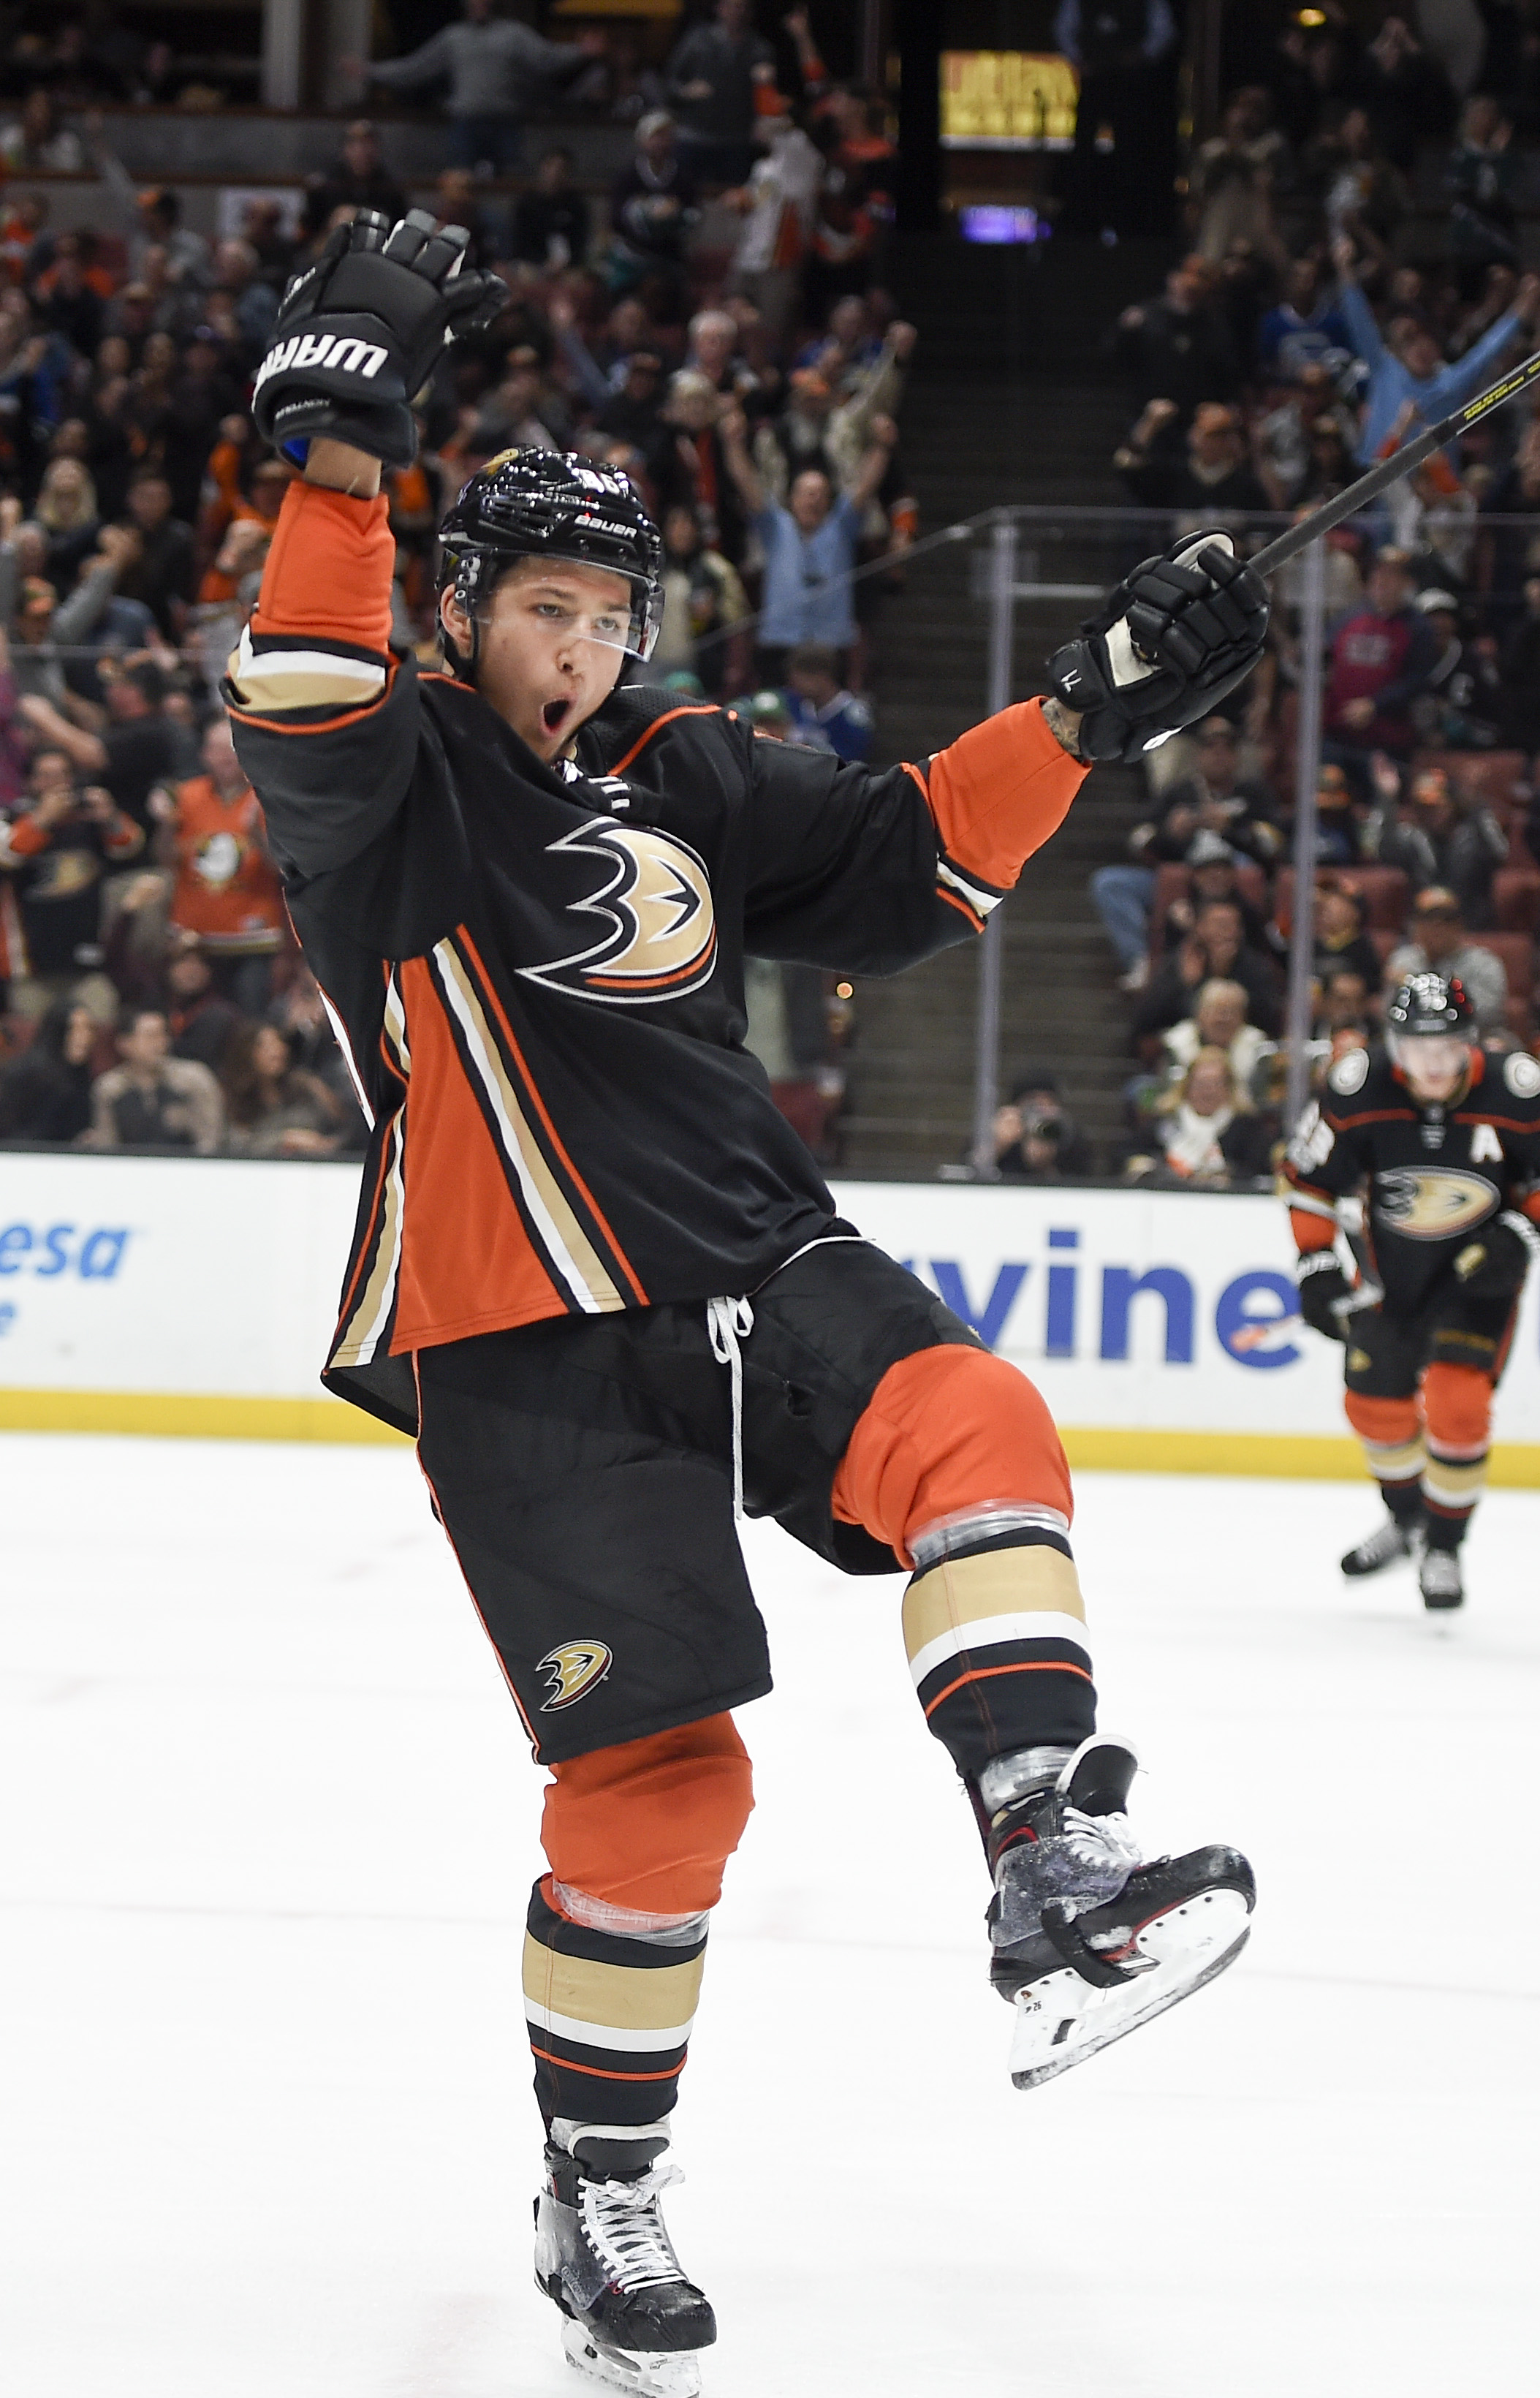 2c1da1849 Montour, 24, is a very important part of the Ducks' defense corps now that  Shea Theodore and Sami Vatanen have been sent elsewhere in the last 13  months.